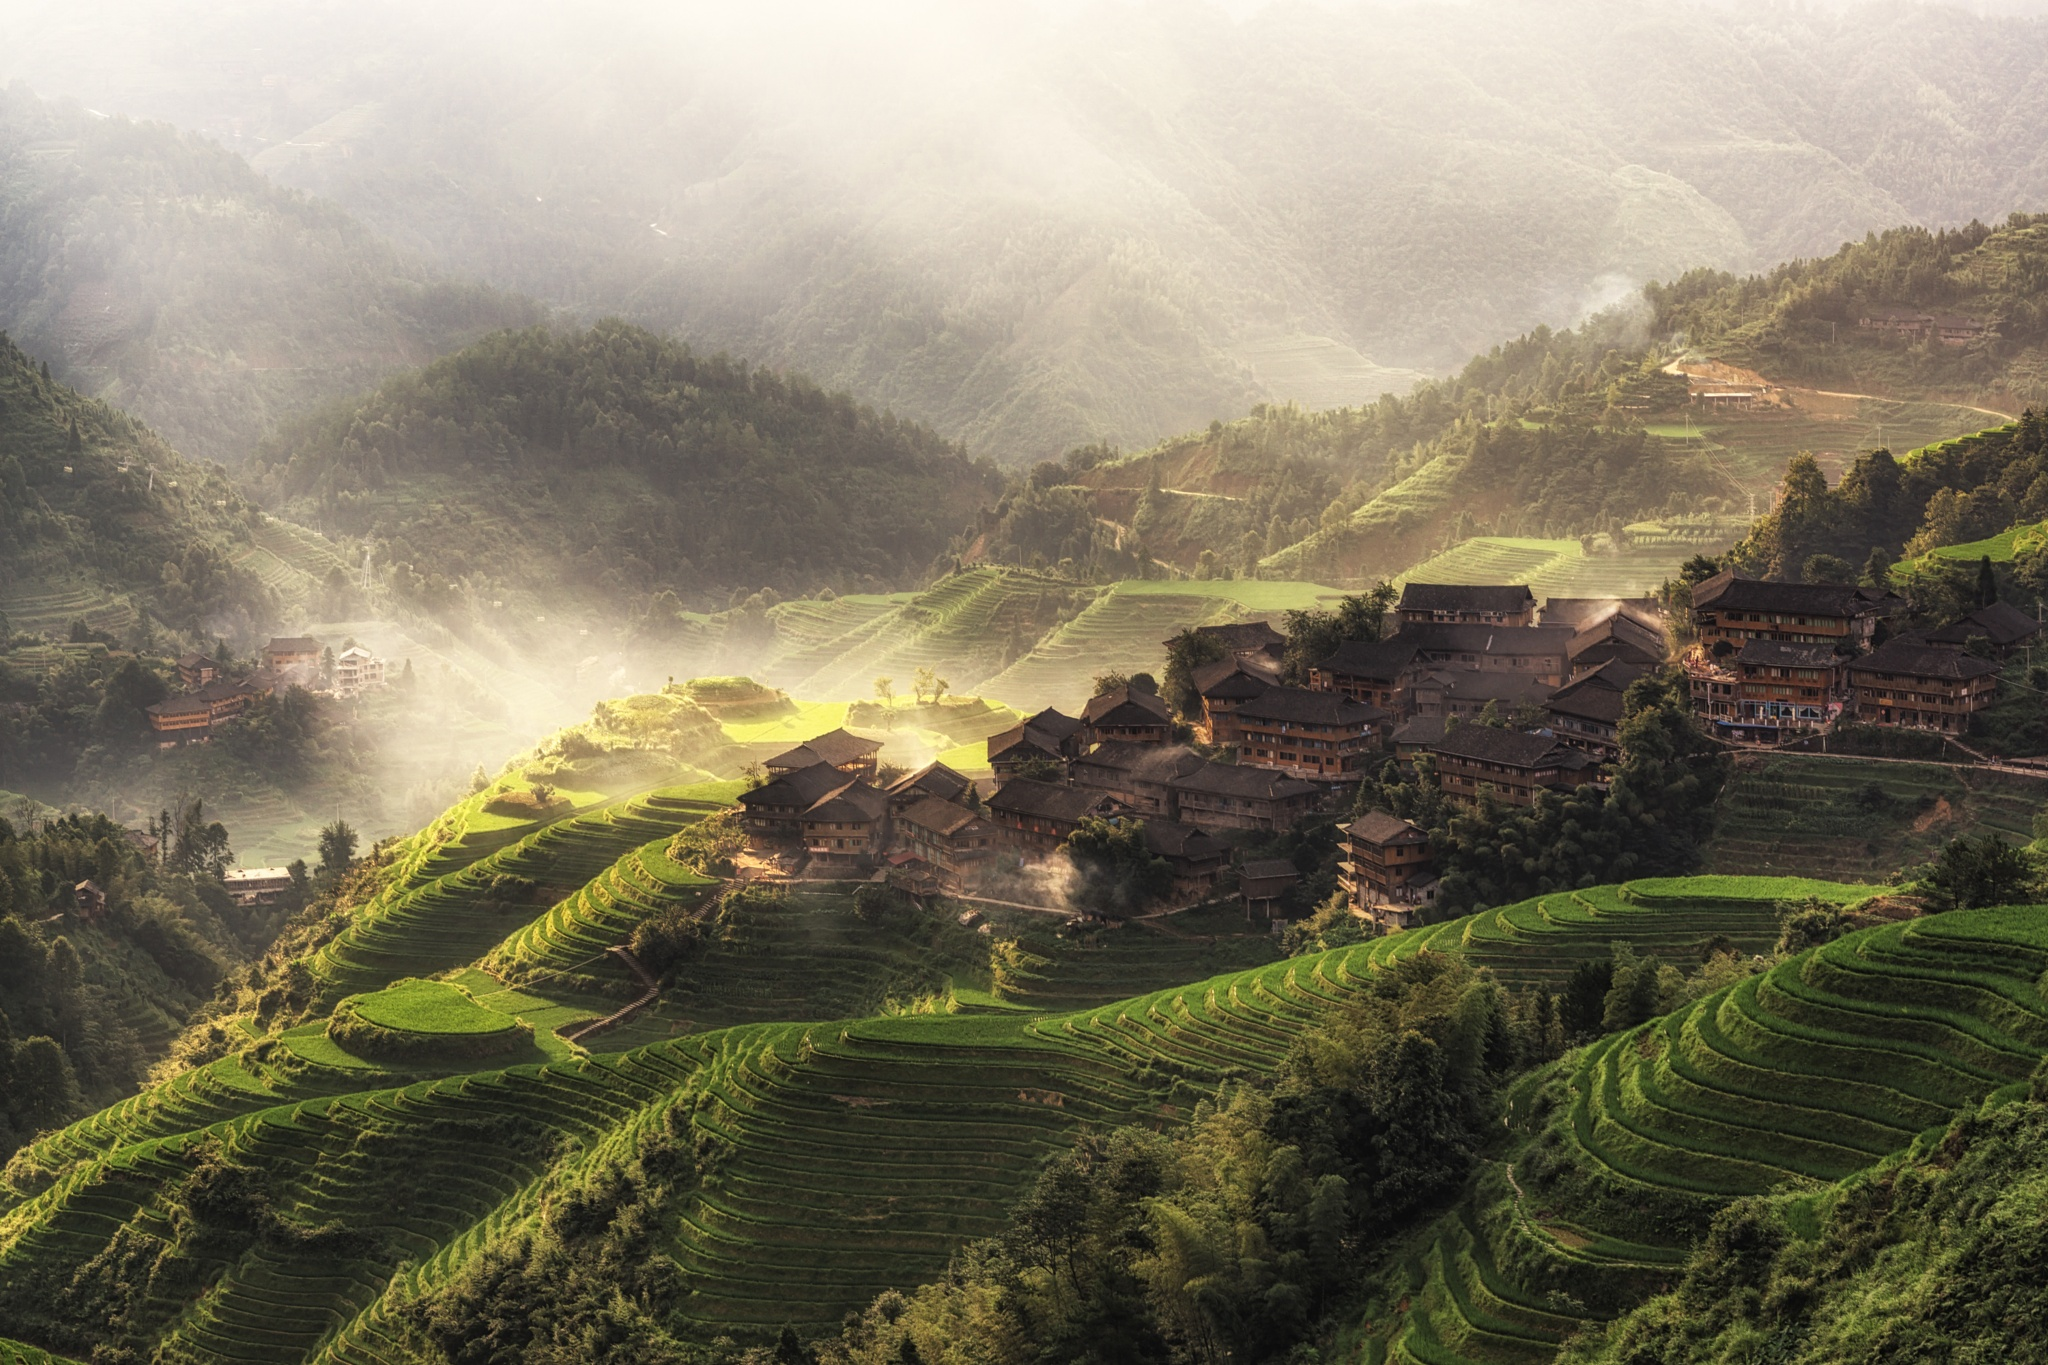 The morning light by Aaron Choi